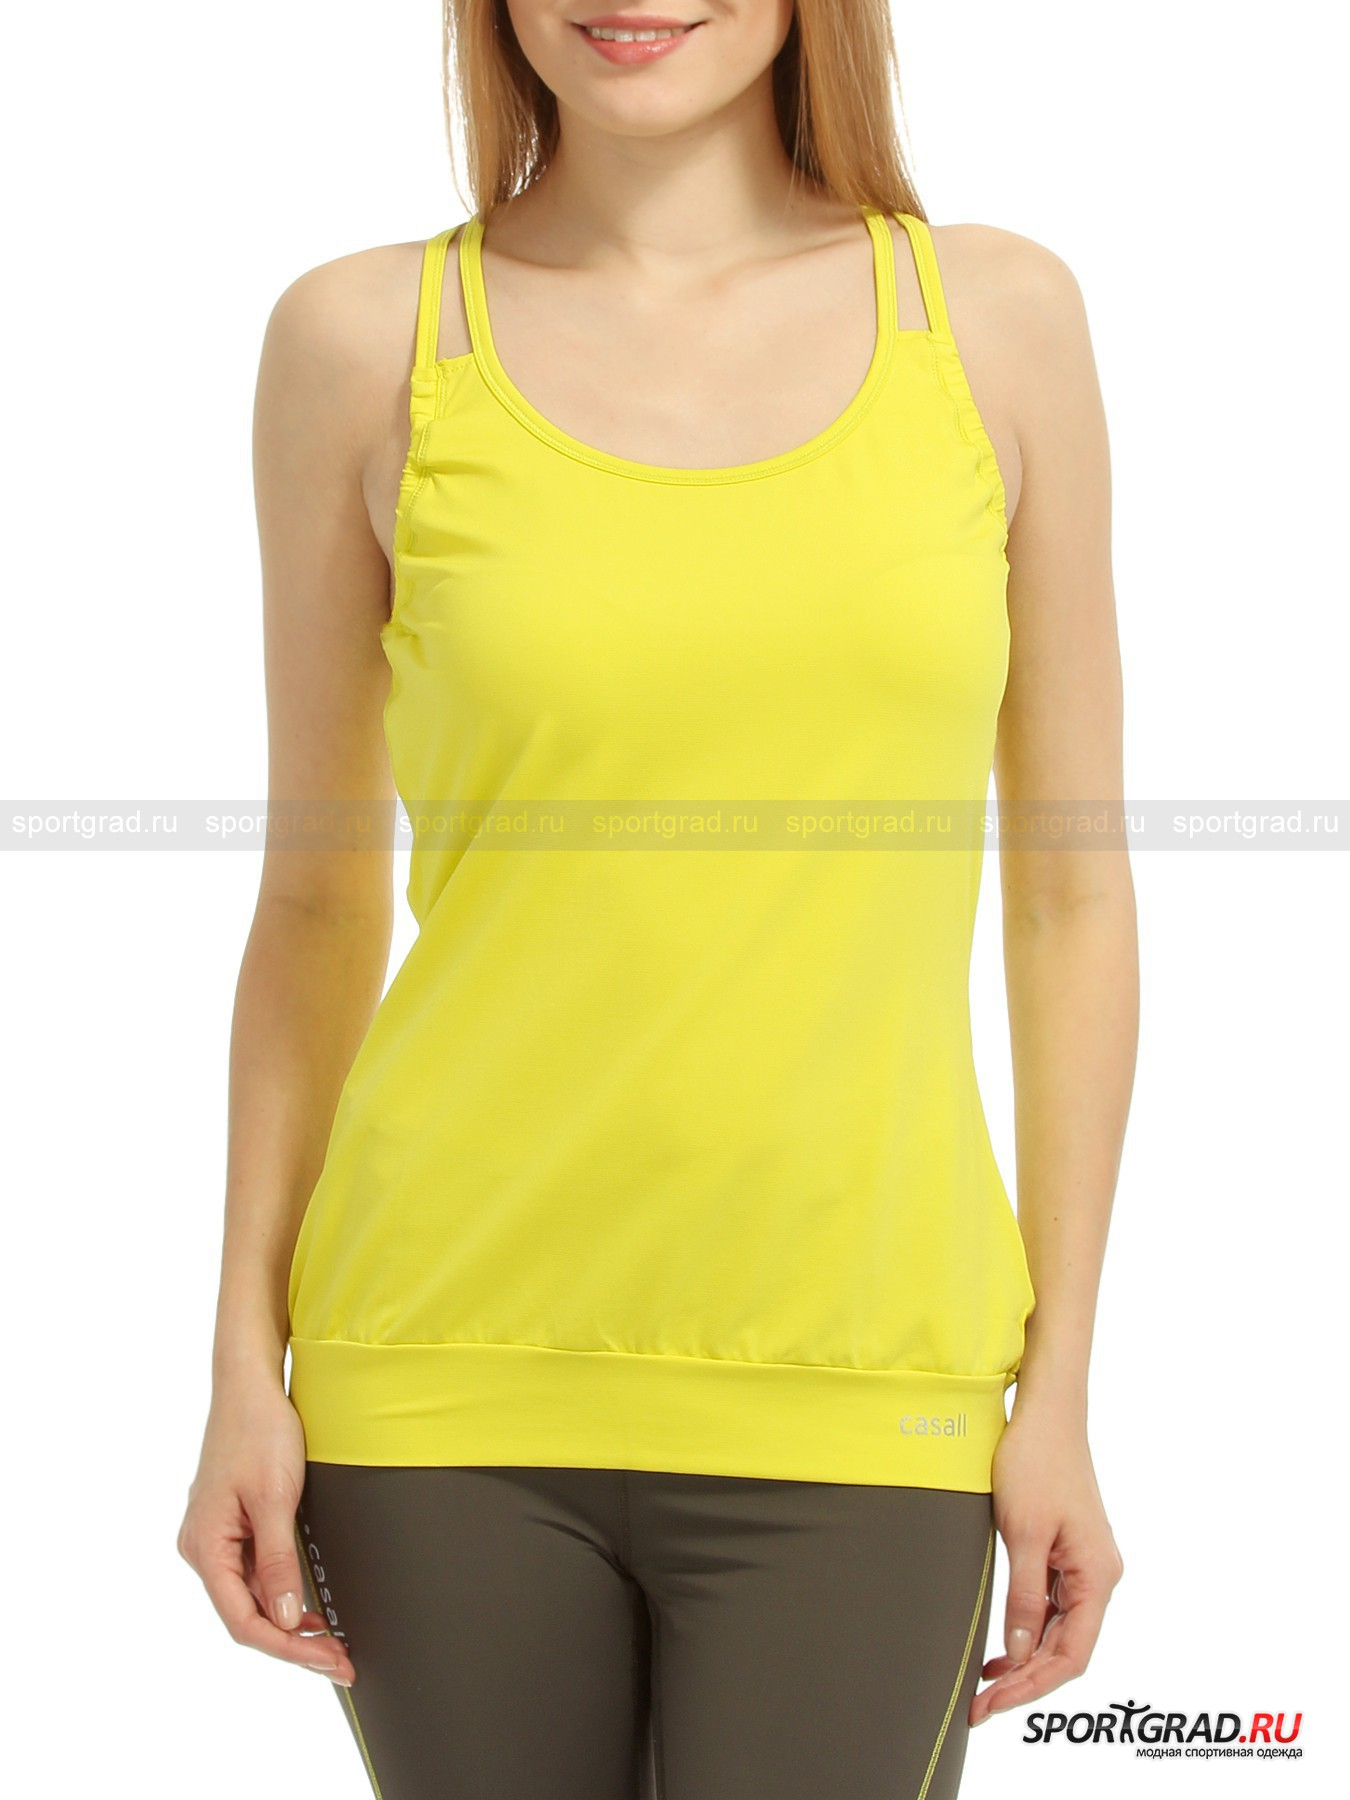 ����� ������� ��� ������� Affection ruched racerback CASALL